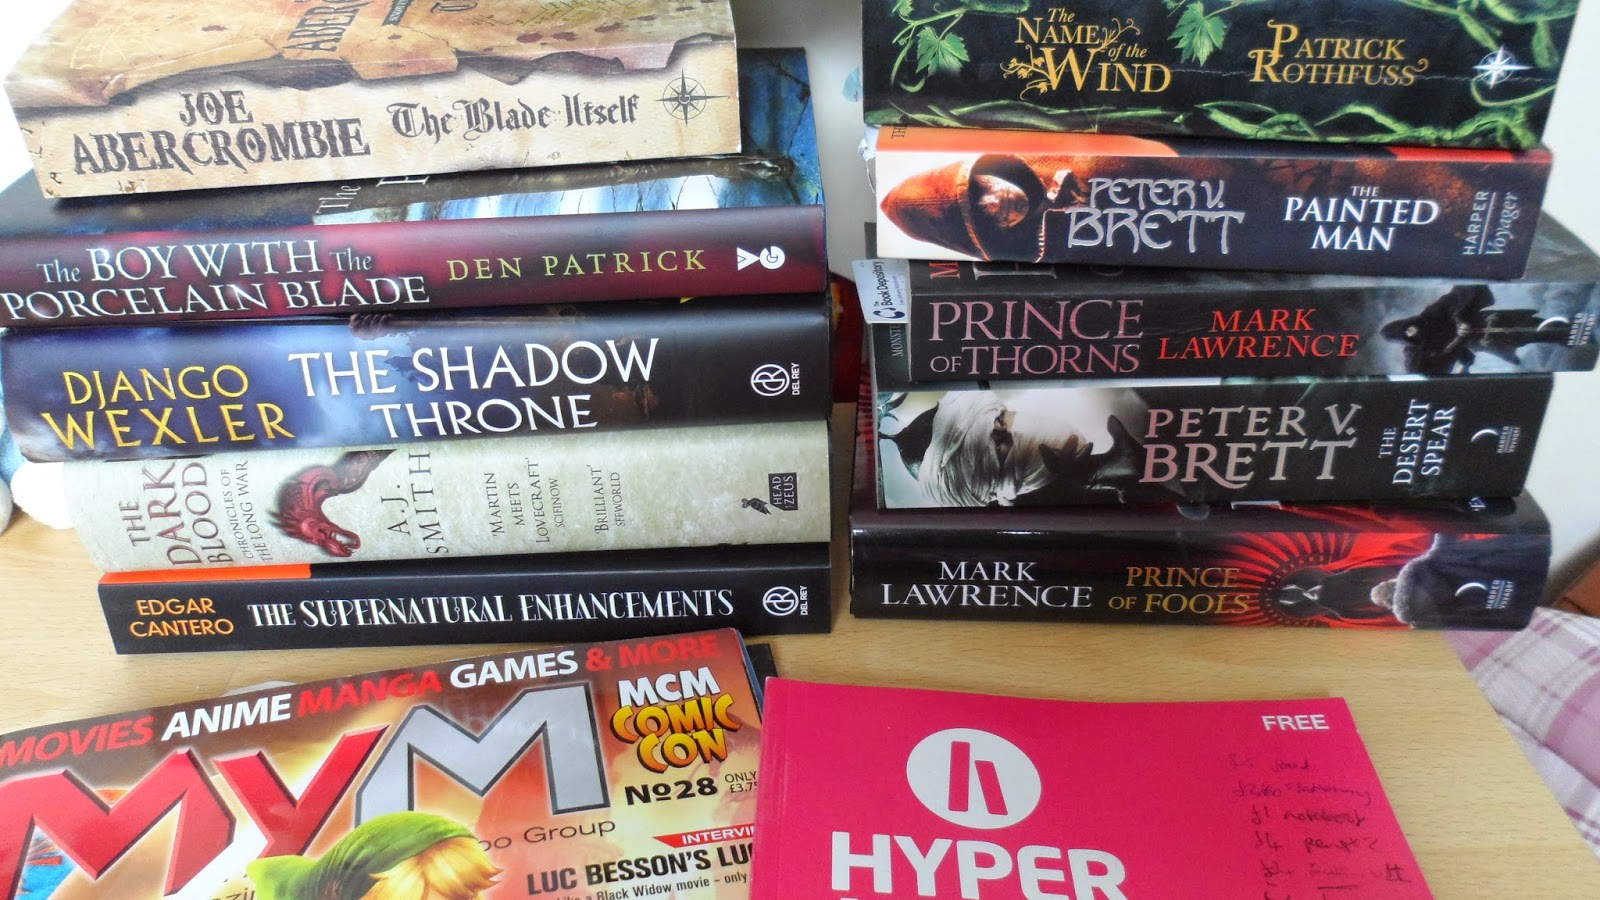 I really want to be a fantasy writer - but -?